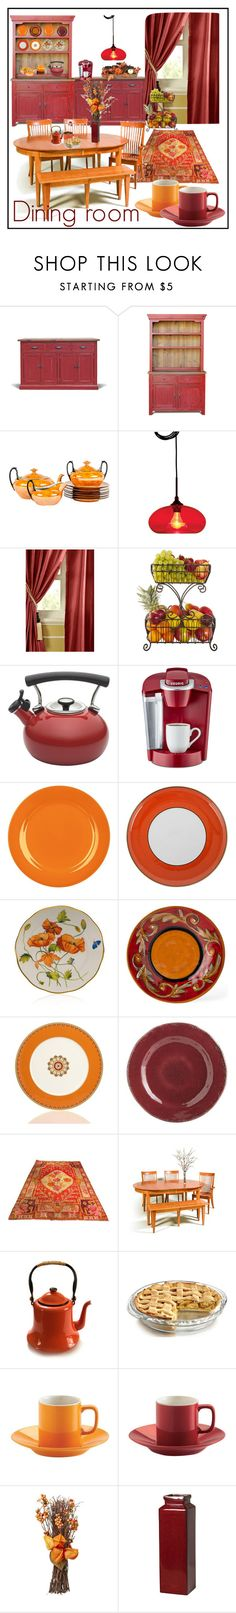 """""""Color challenge: Dining room"""" by rosidew on Polyvore featuring interior, interiors, interior design, Zuhause, home decor, interior decorating, Cottage Home, Mikasa, Circulon und Keurig"""